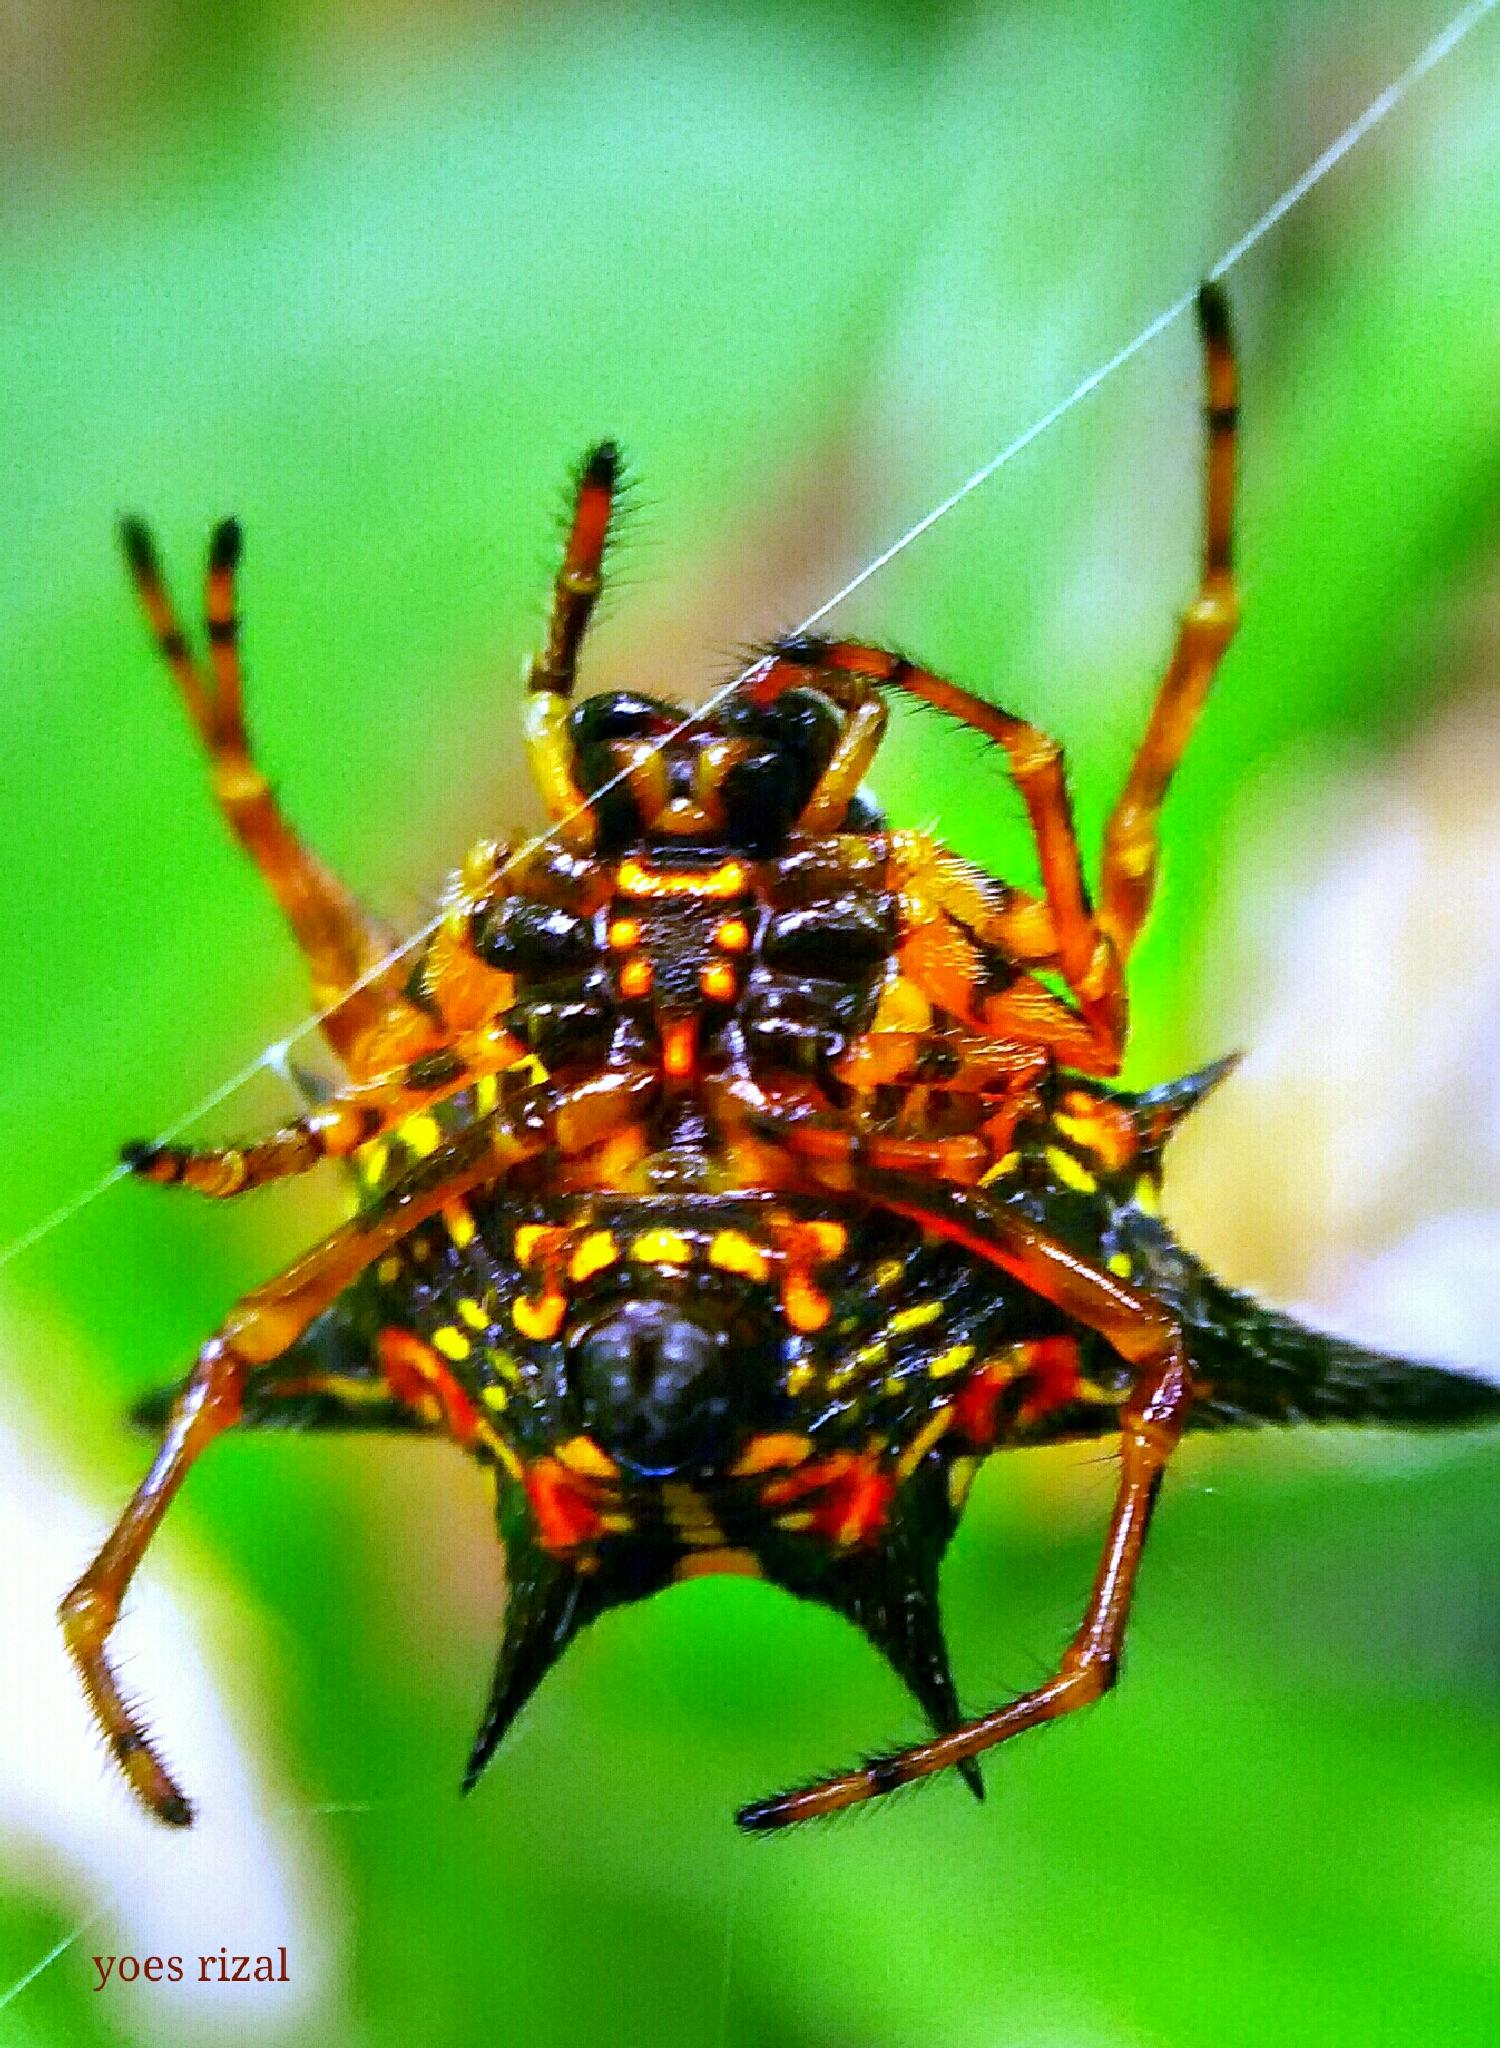 monster spider by yoes rizal